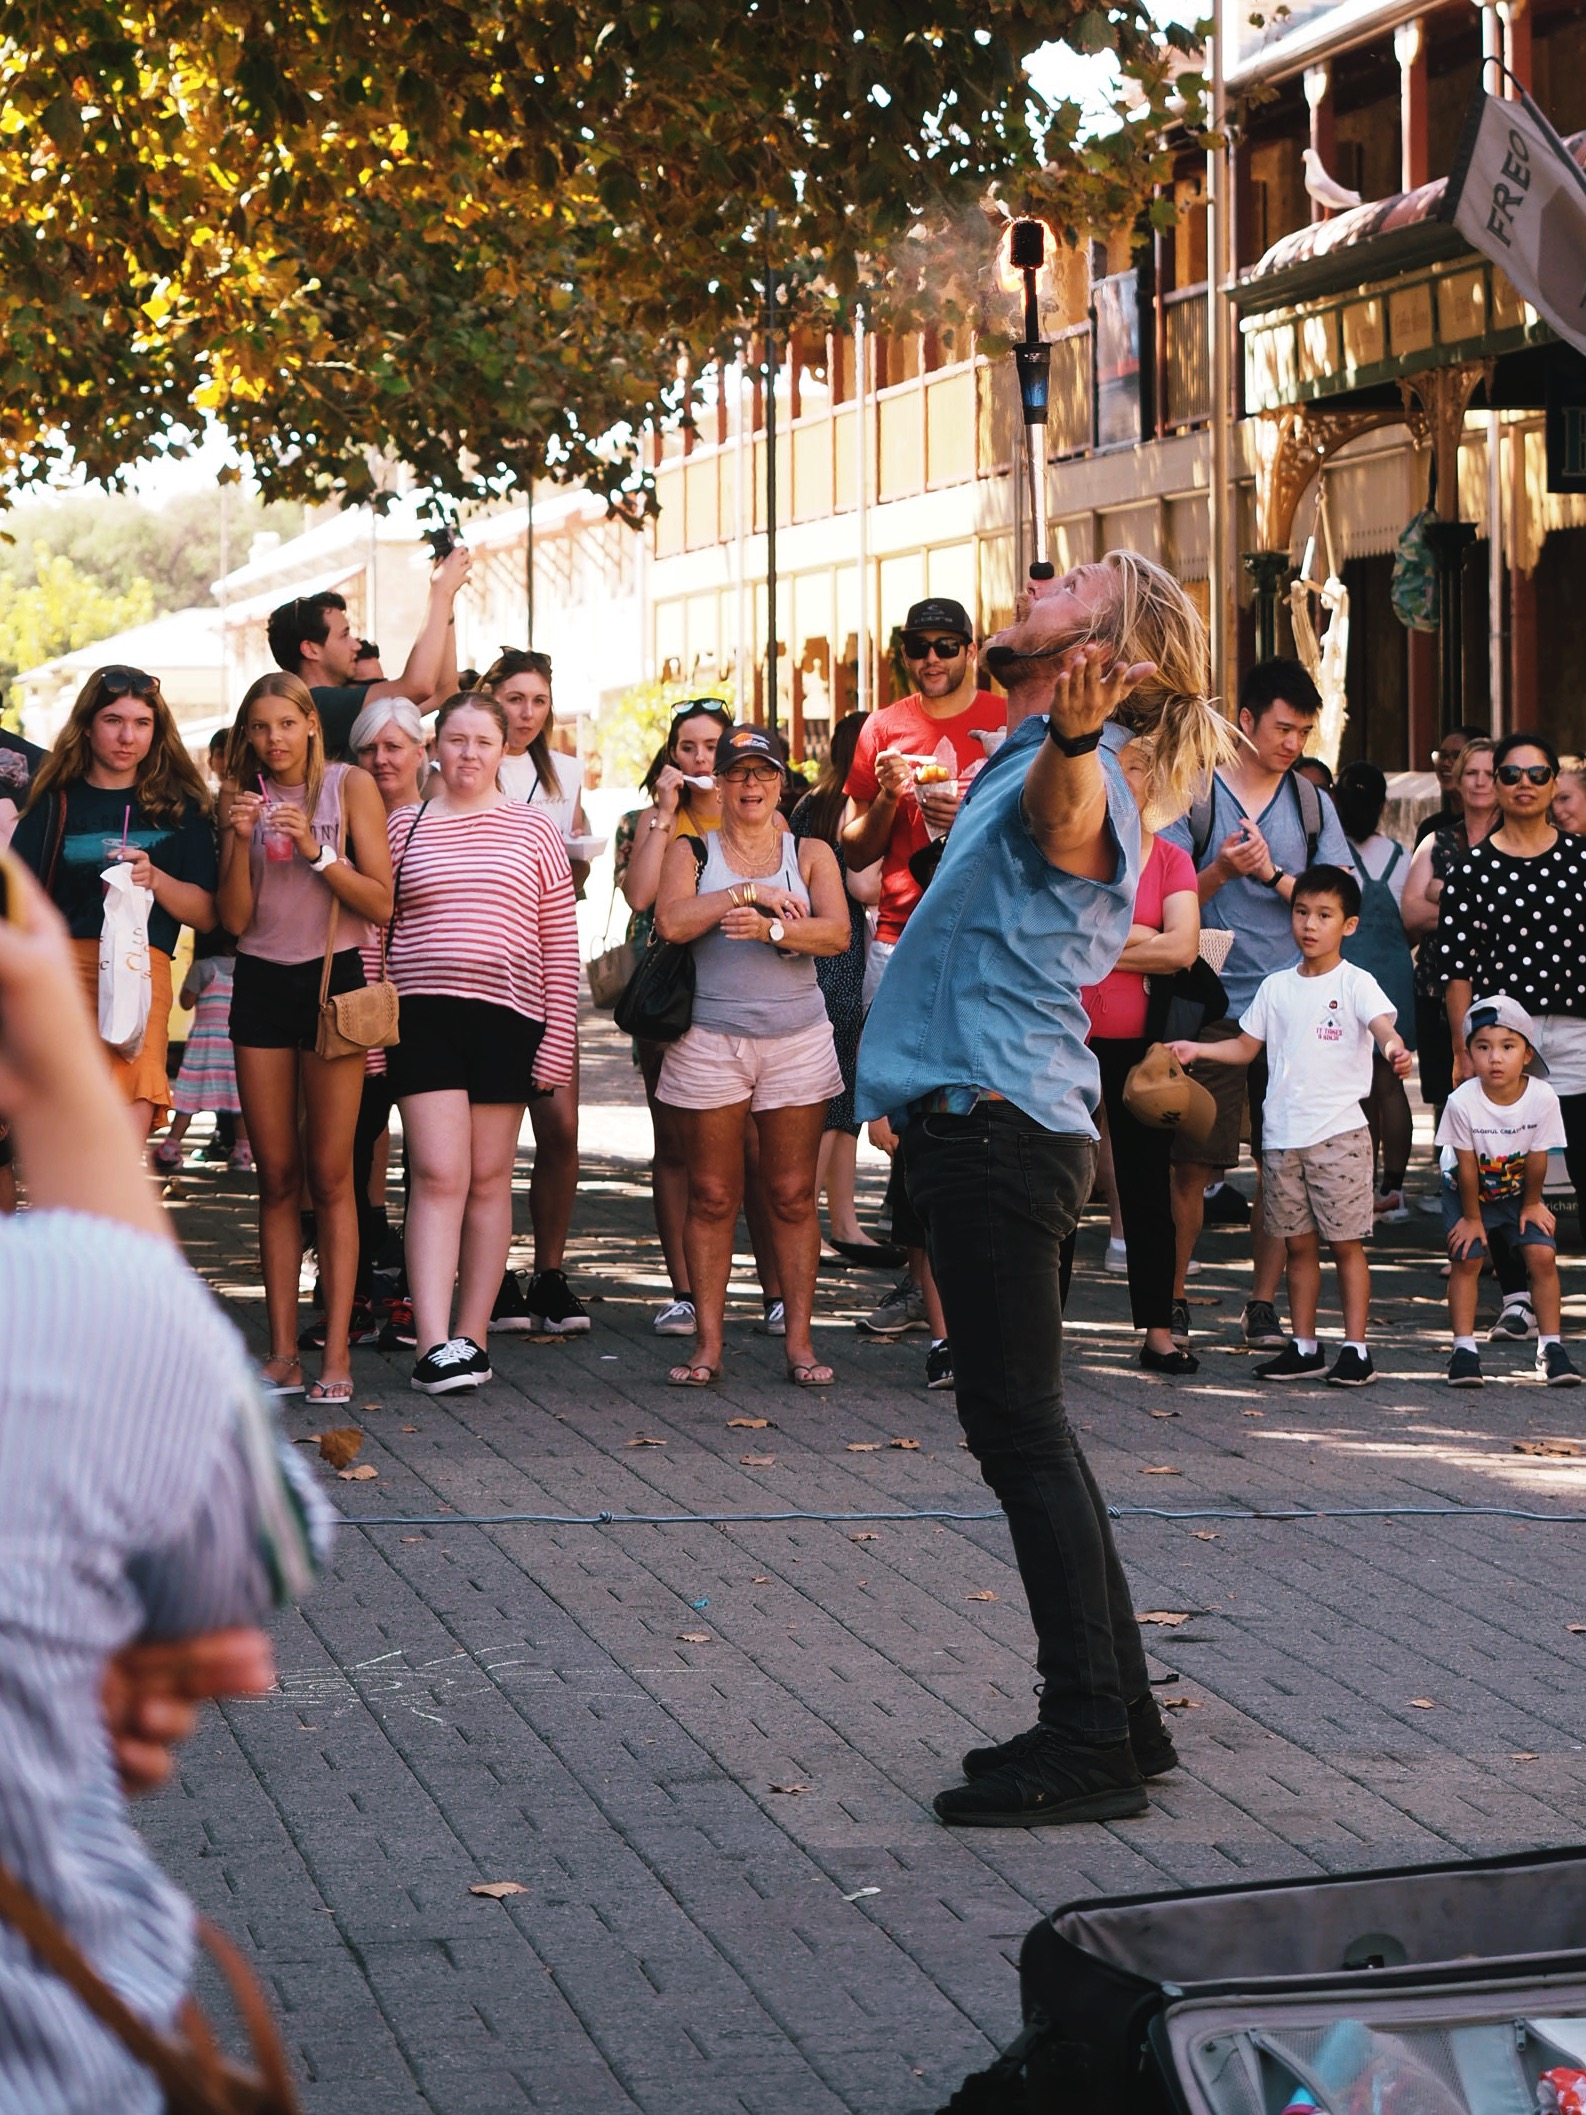 Weekly performance outside of Fremantle Market